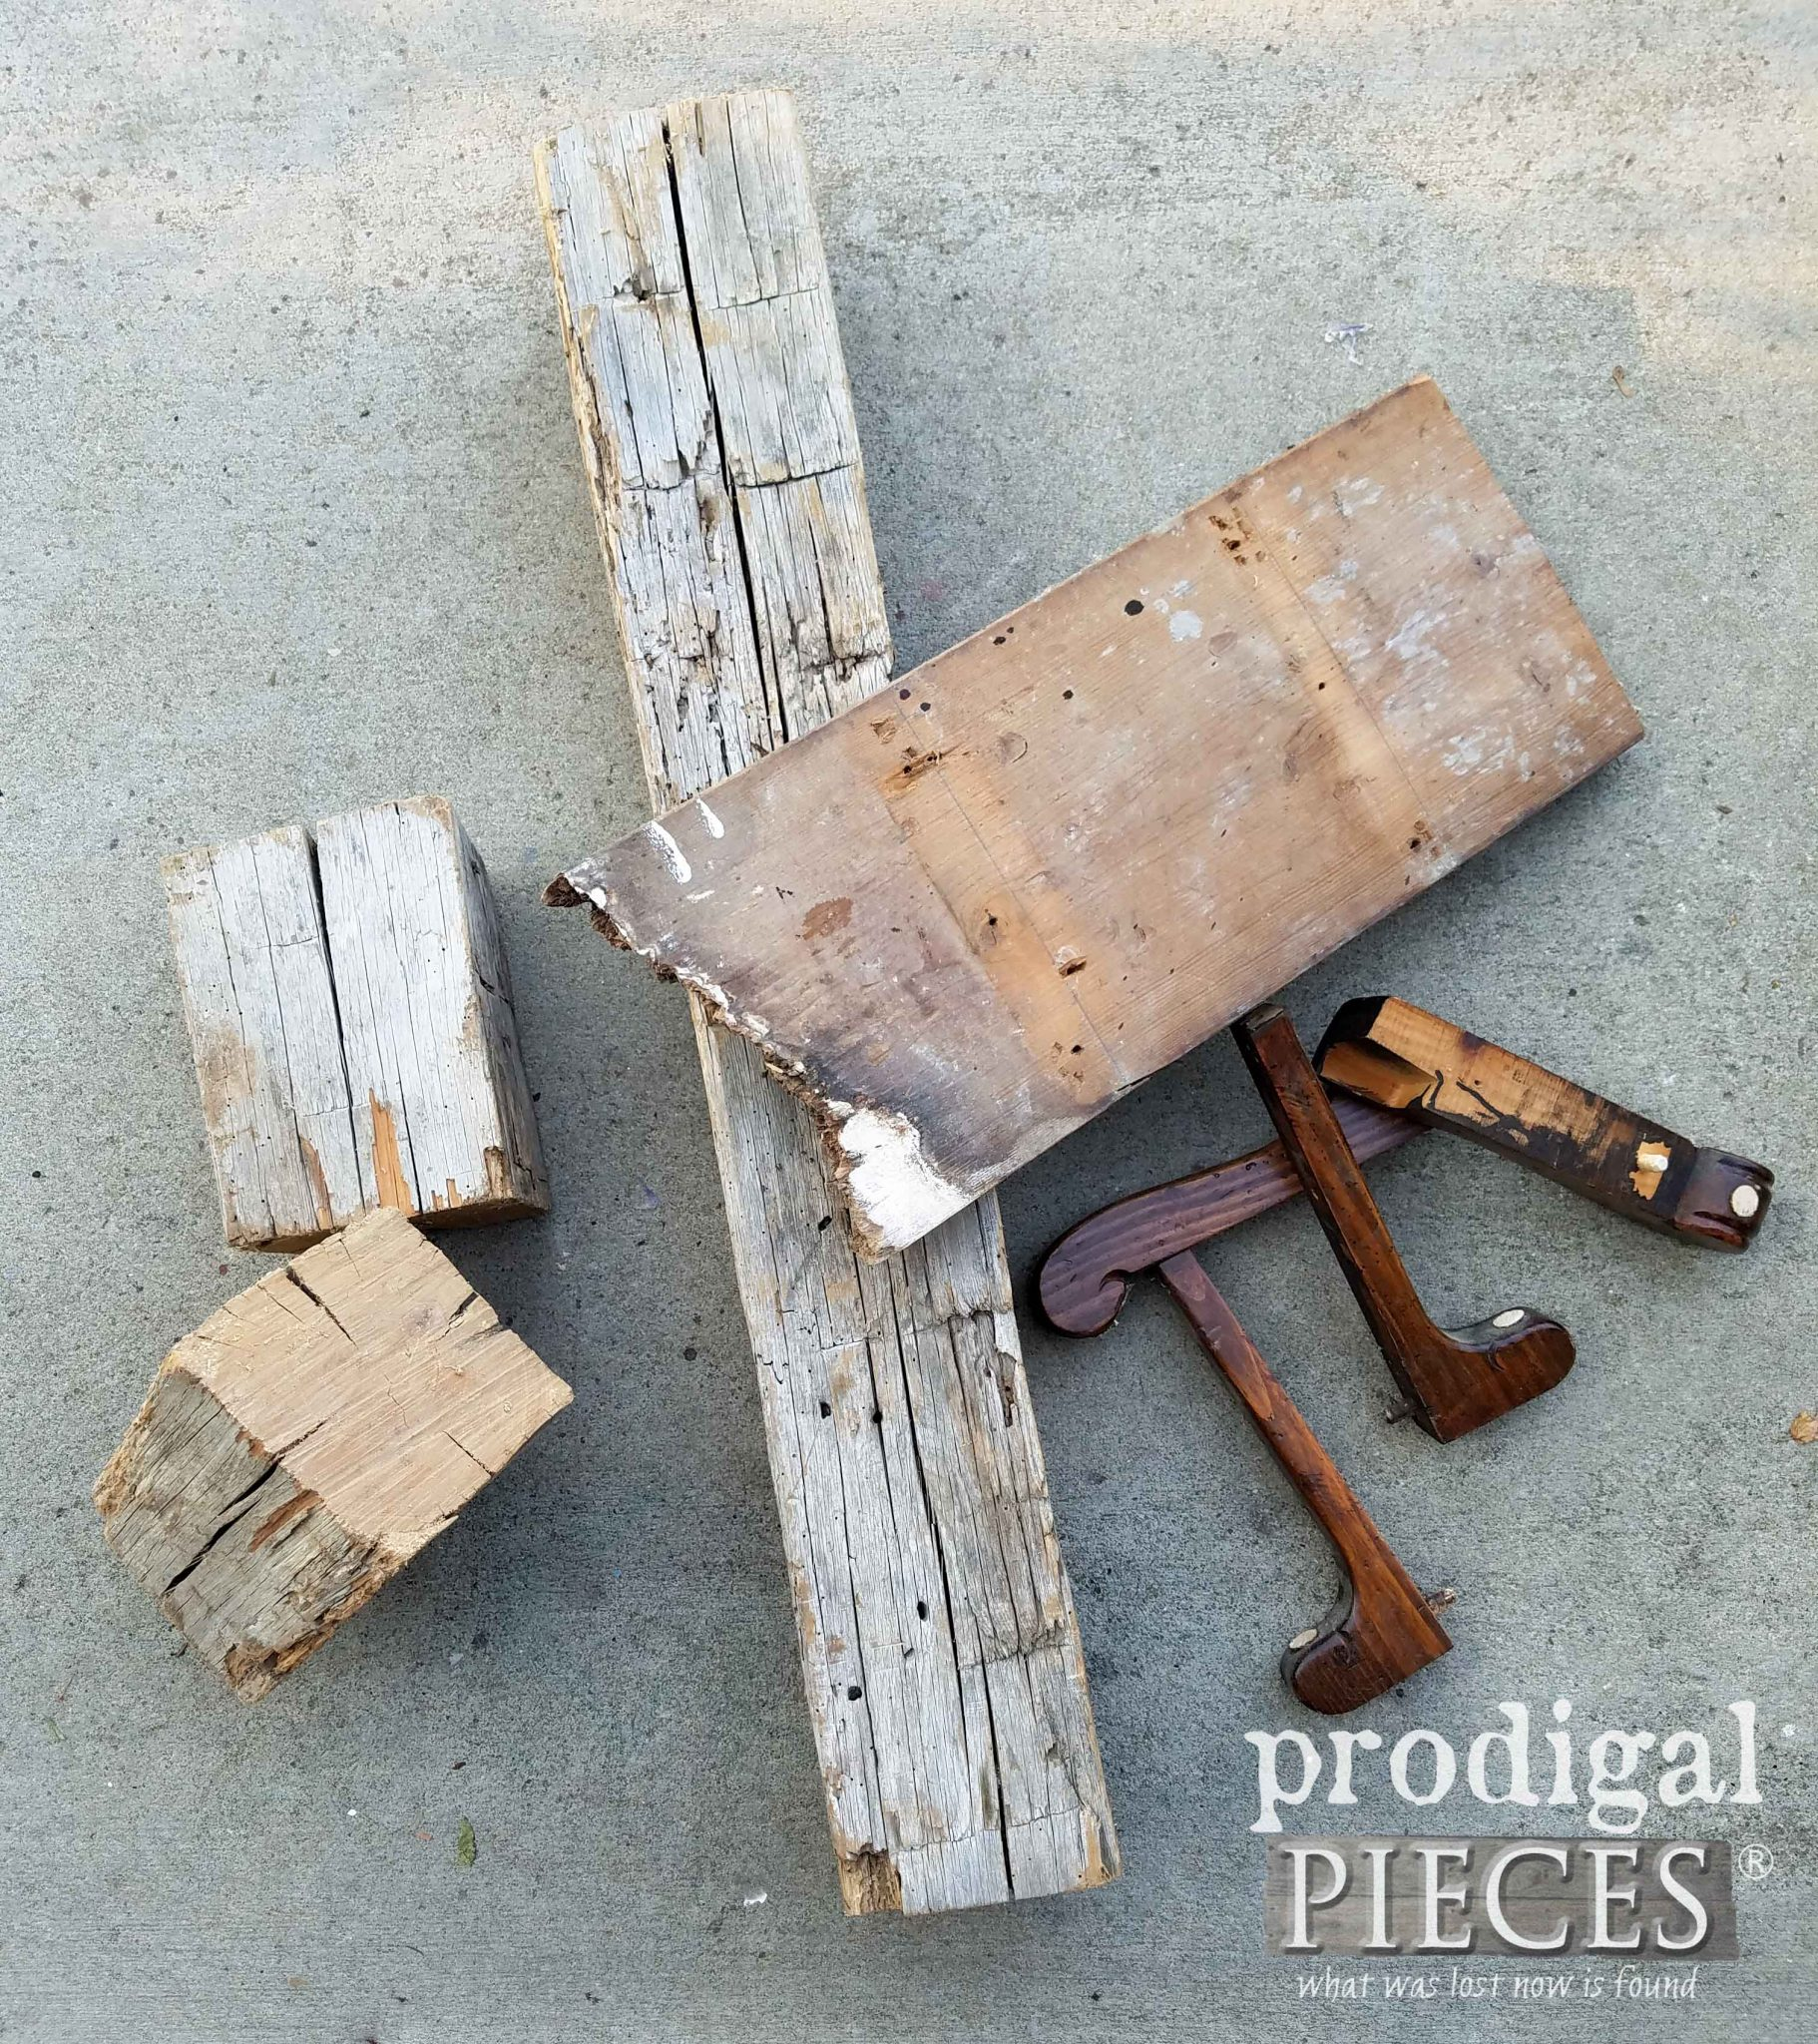 Reclaimed Wood Pile at Prodigal Pieces | prodigalpieces.com